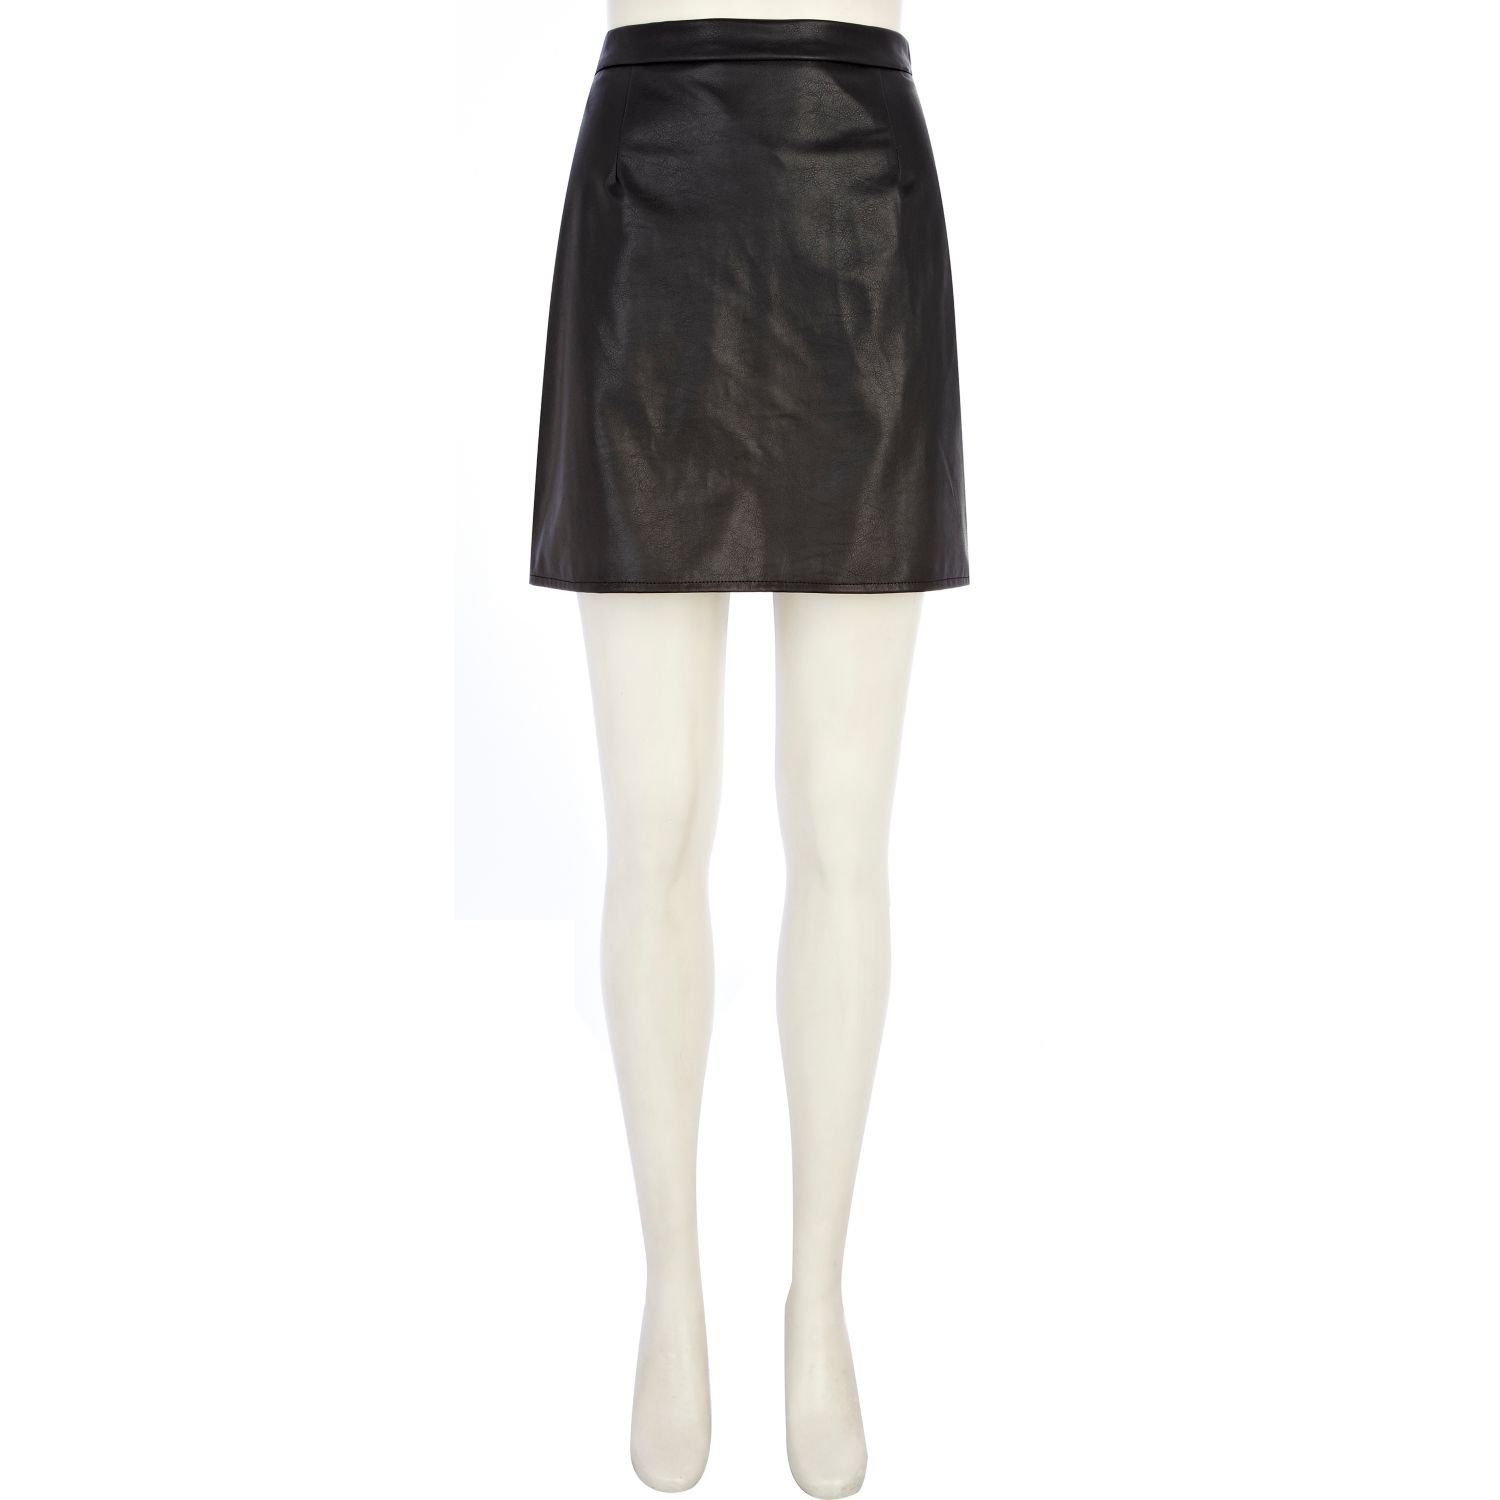 14ed3b7b76 River Island Black Leather-look A-line Skirt in Black - Lyst